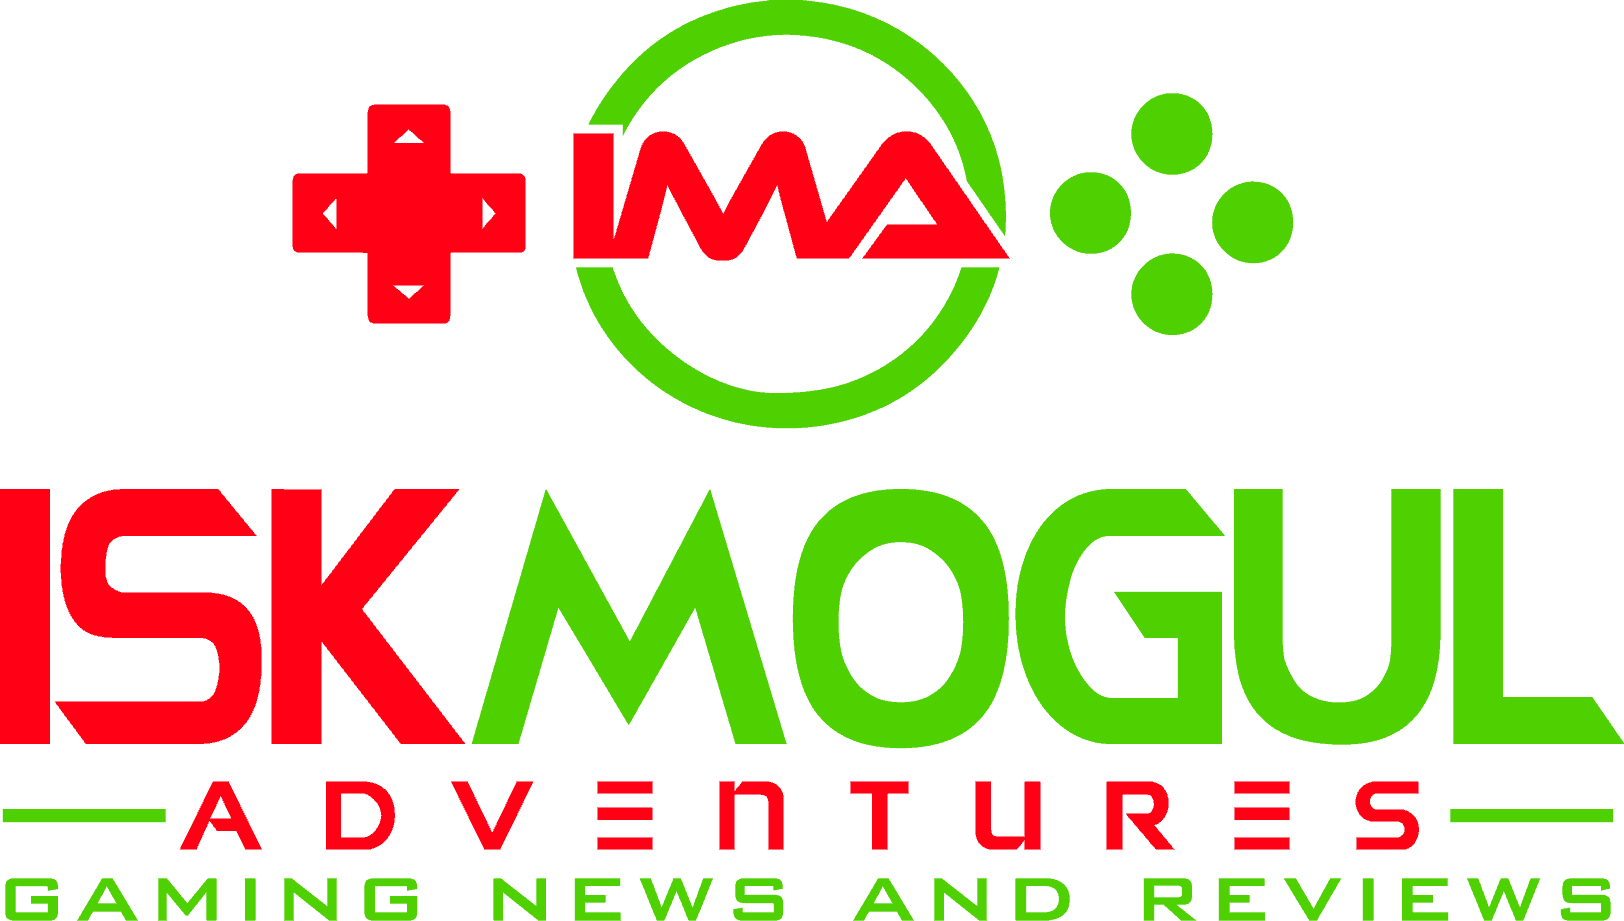 ISK Mogul Adventures